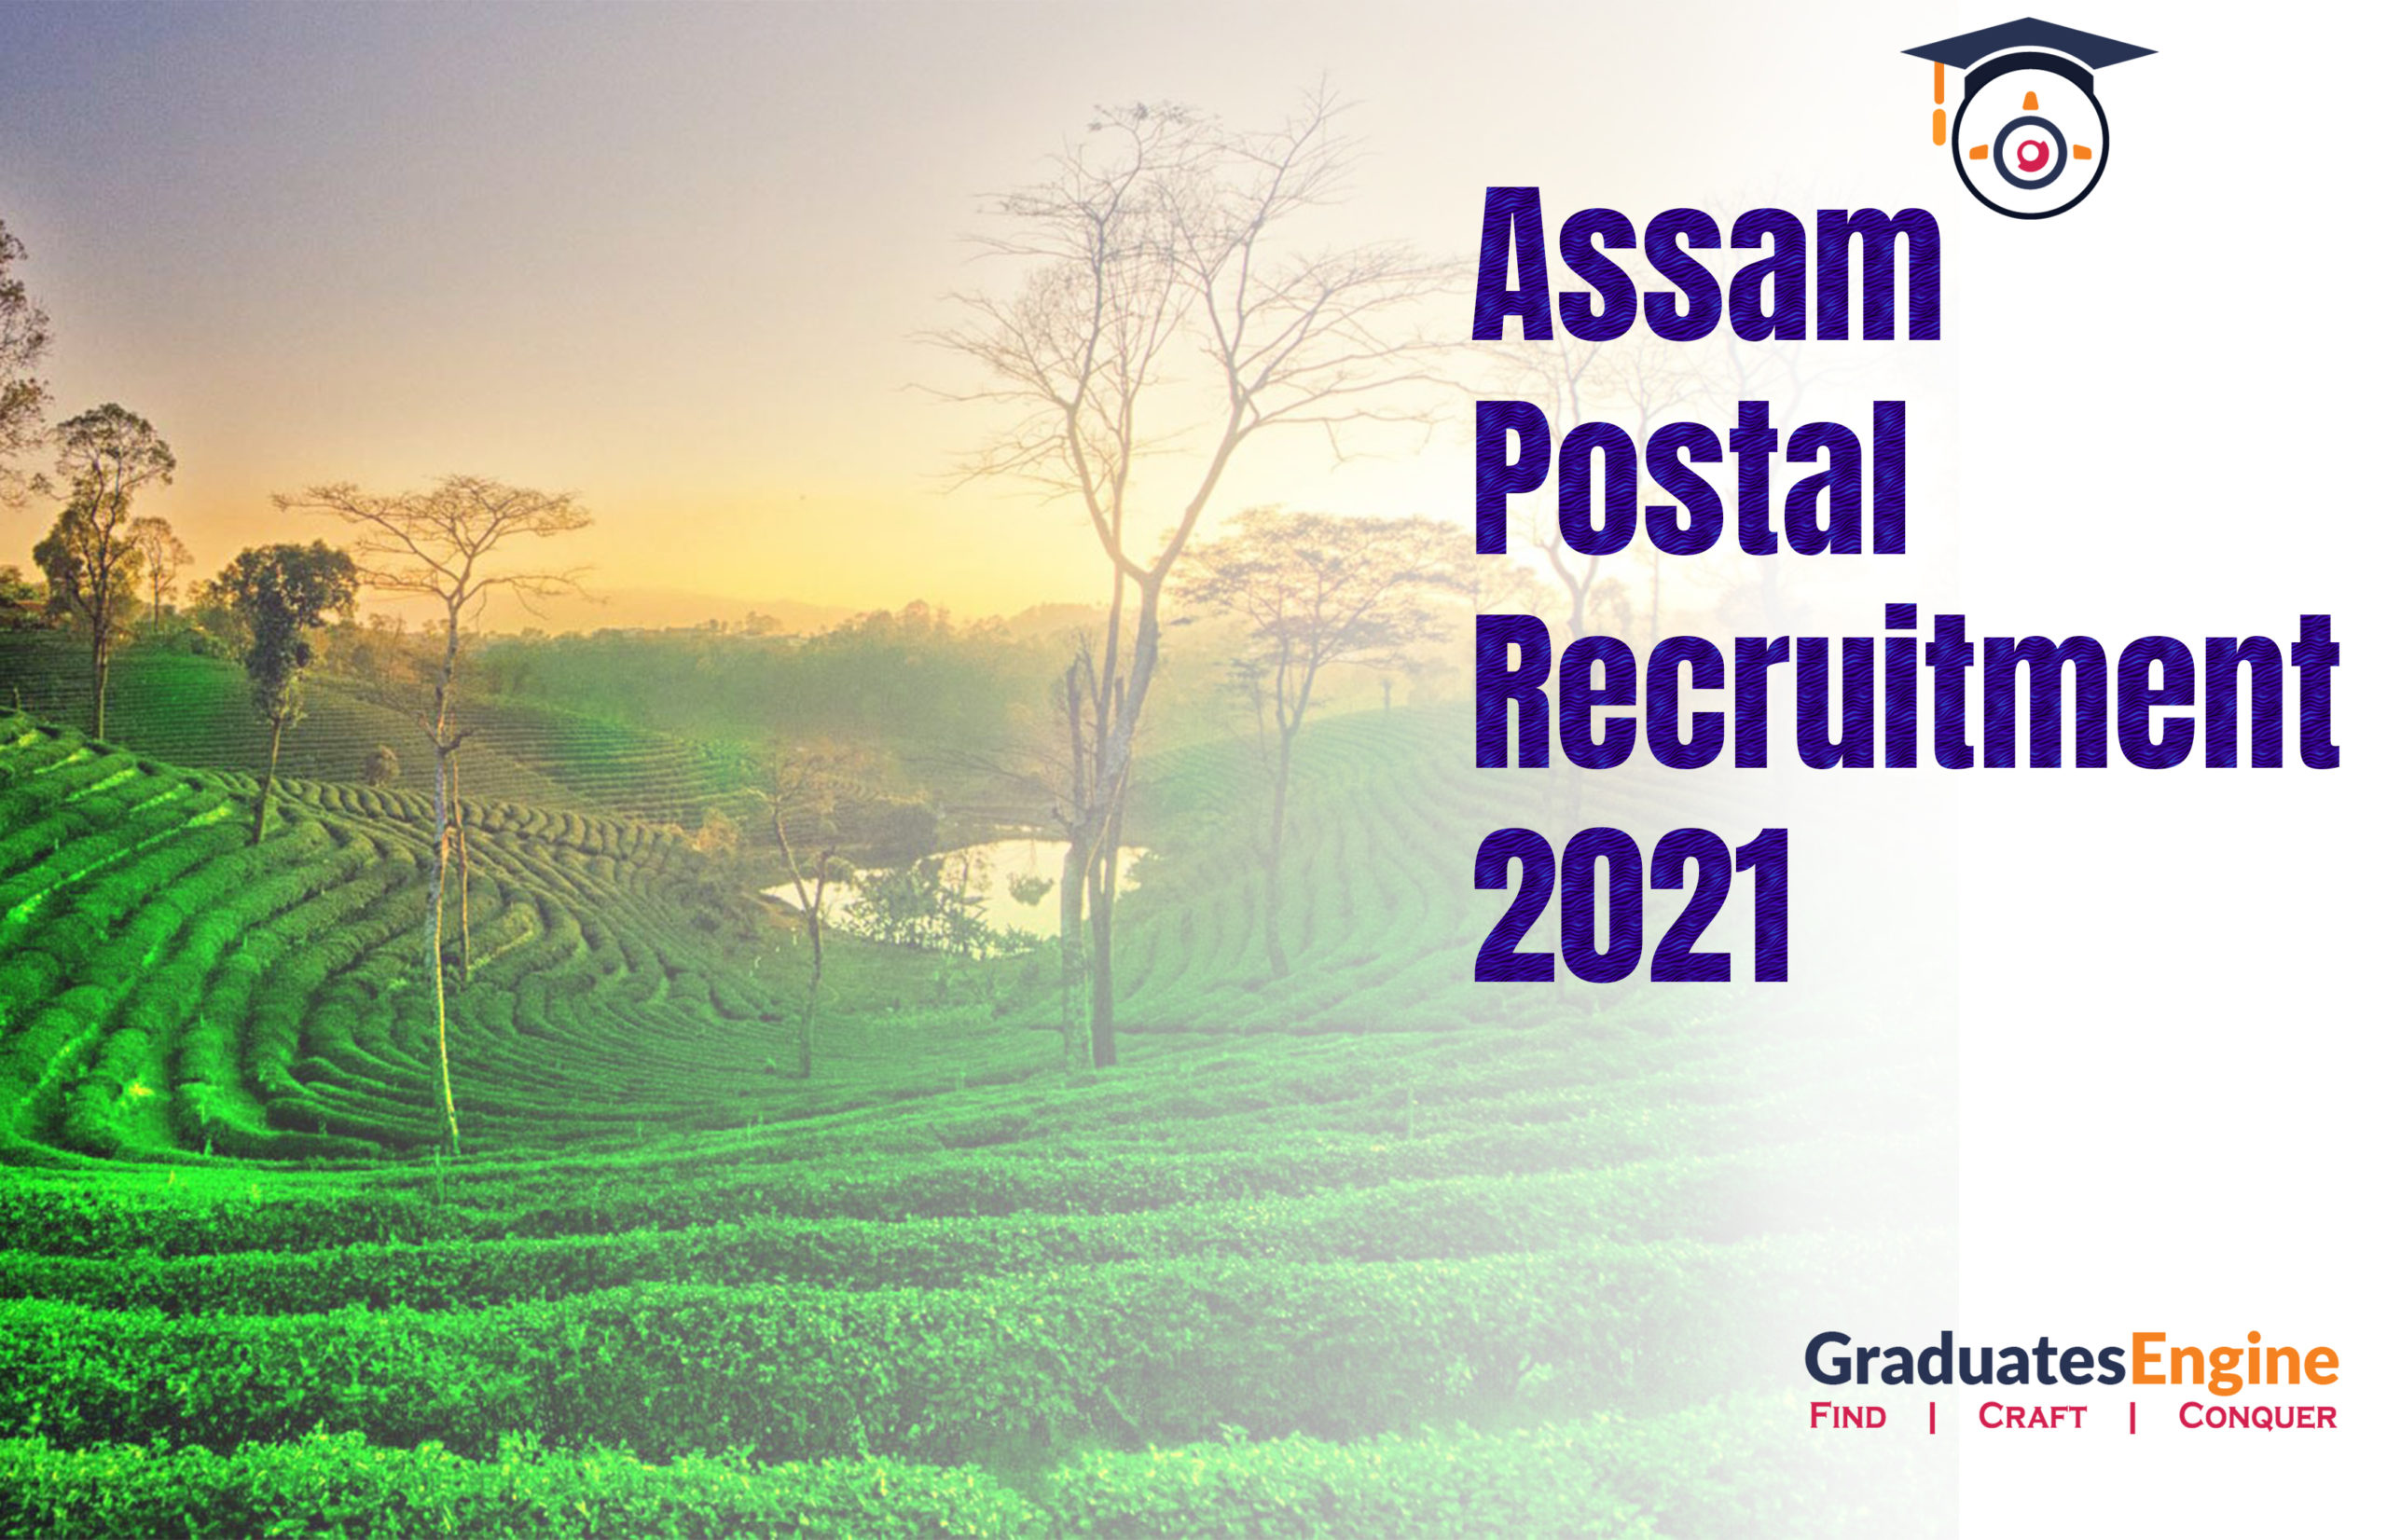 Assam Postal Recruitment 2021